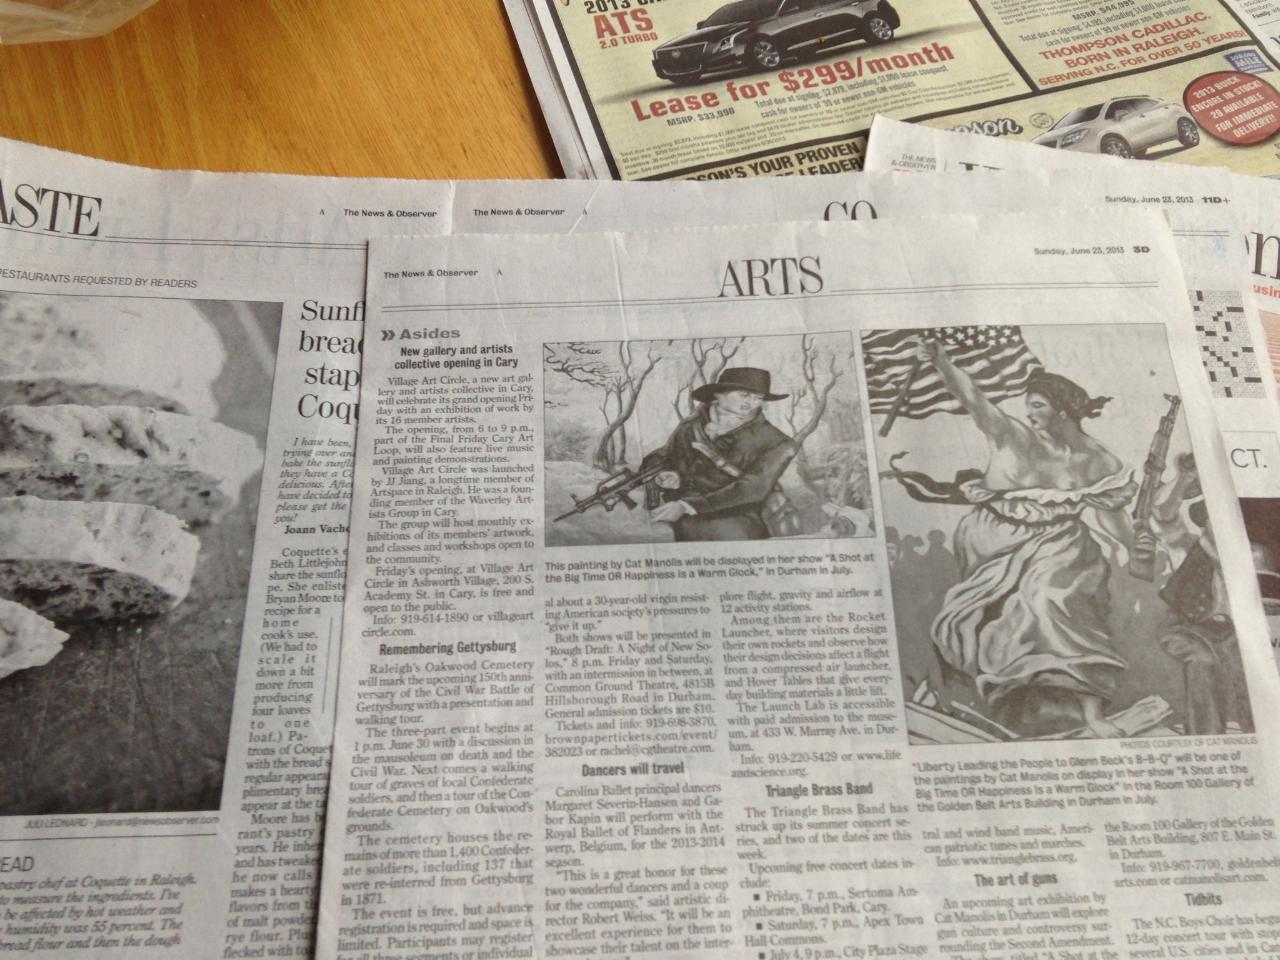 PRESS FOR SOLO SHOW in Raleigh's News and Observer newspaper.